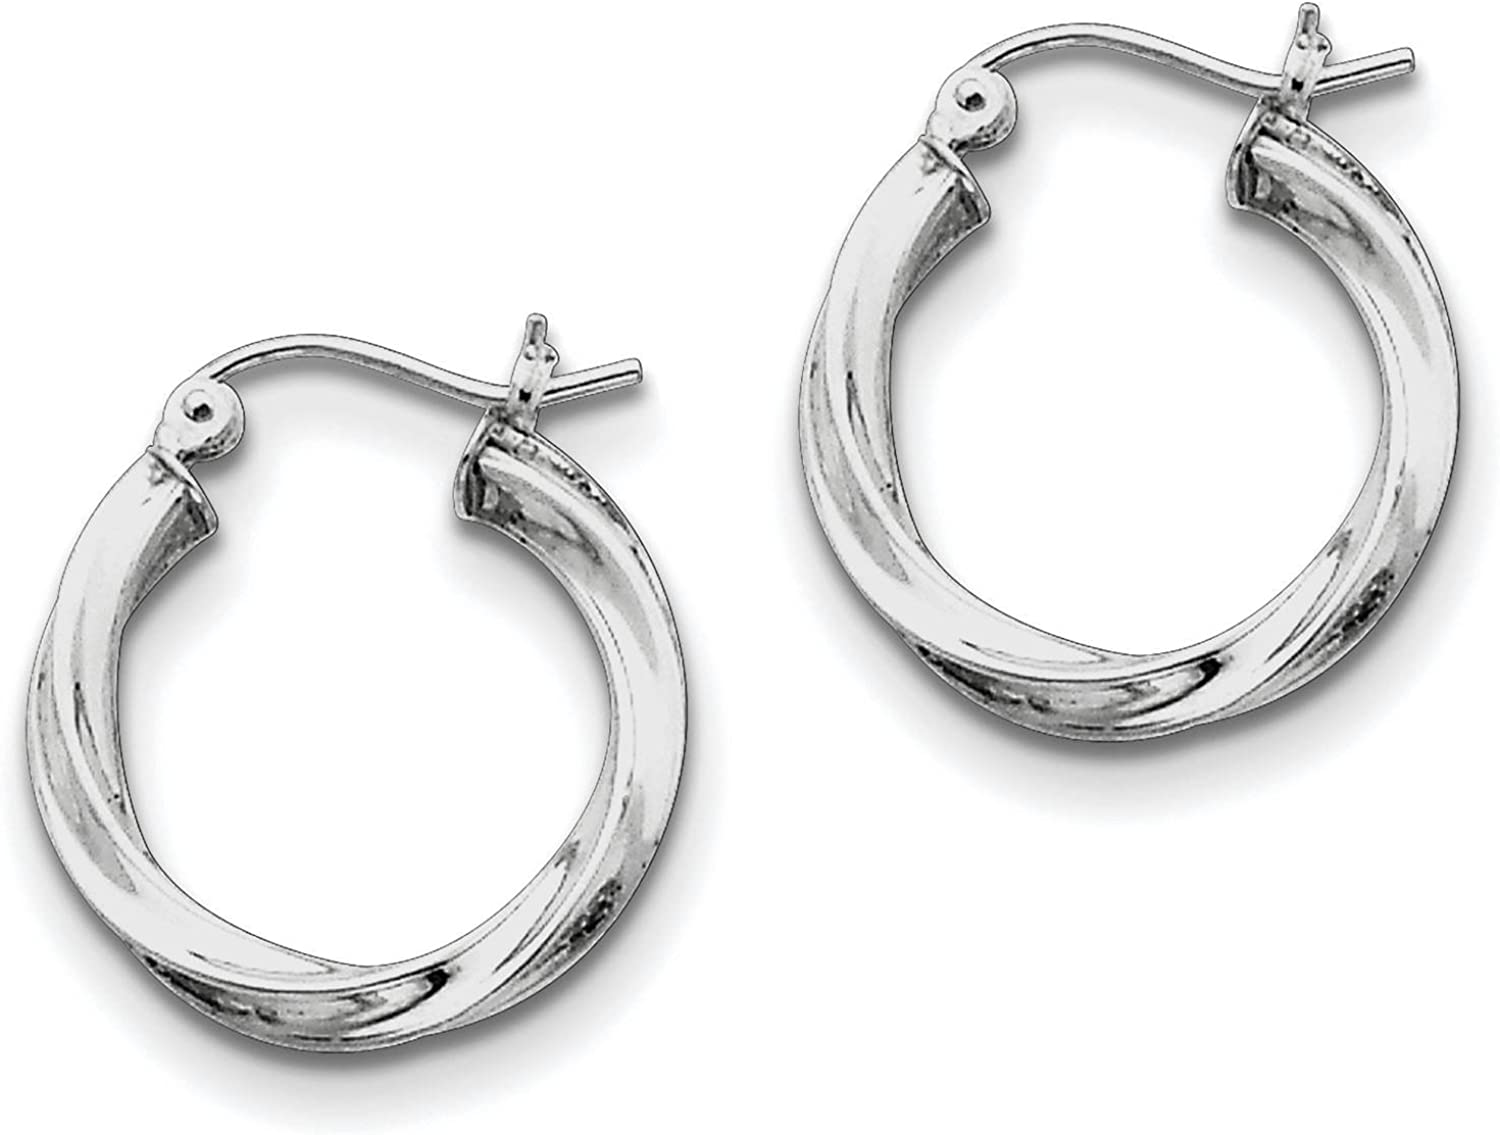 925 Sterling Silver Rhodium-plated Polished Round Twisted Hoop Earrings 2.5mm x 22mm